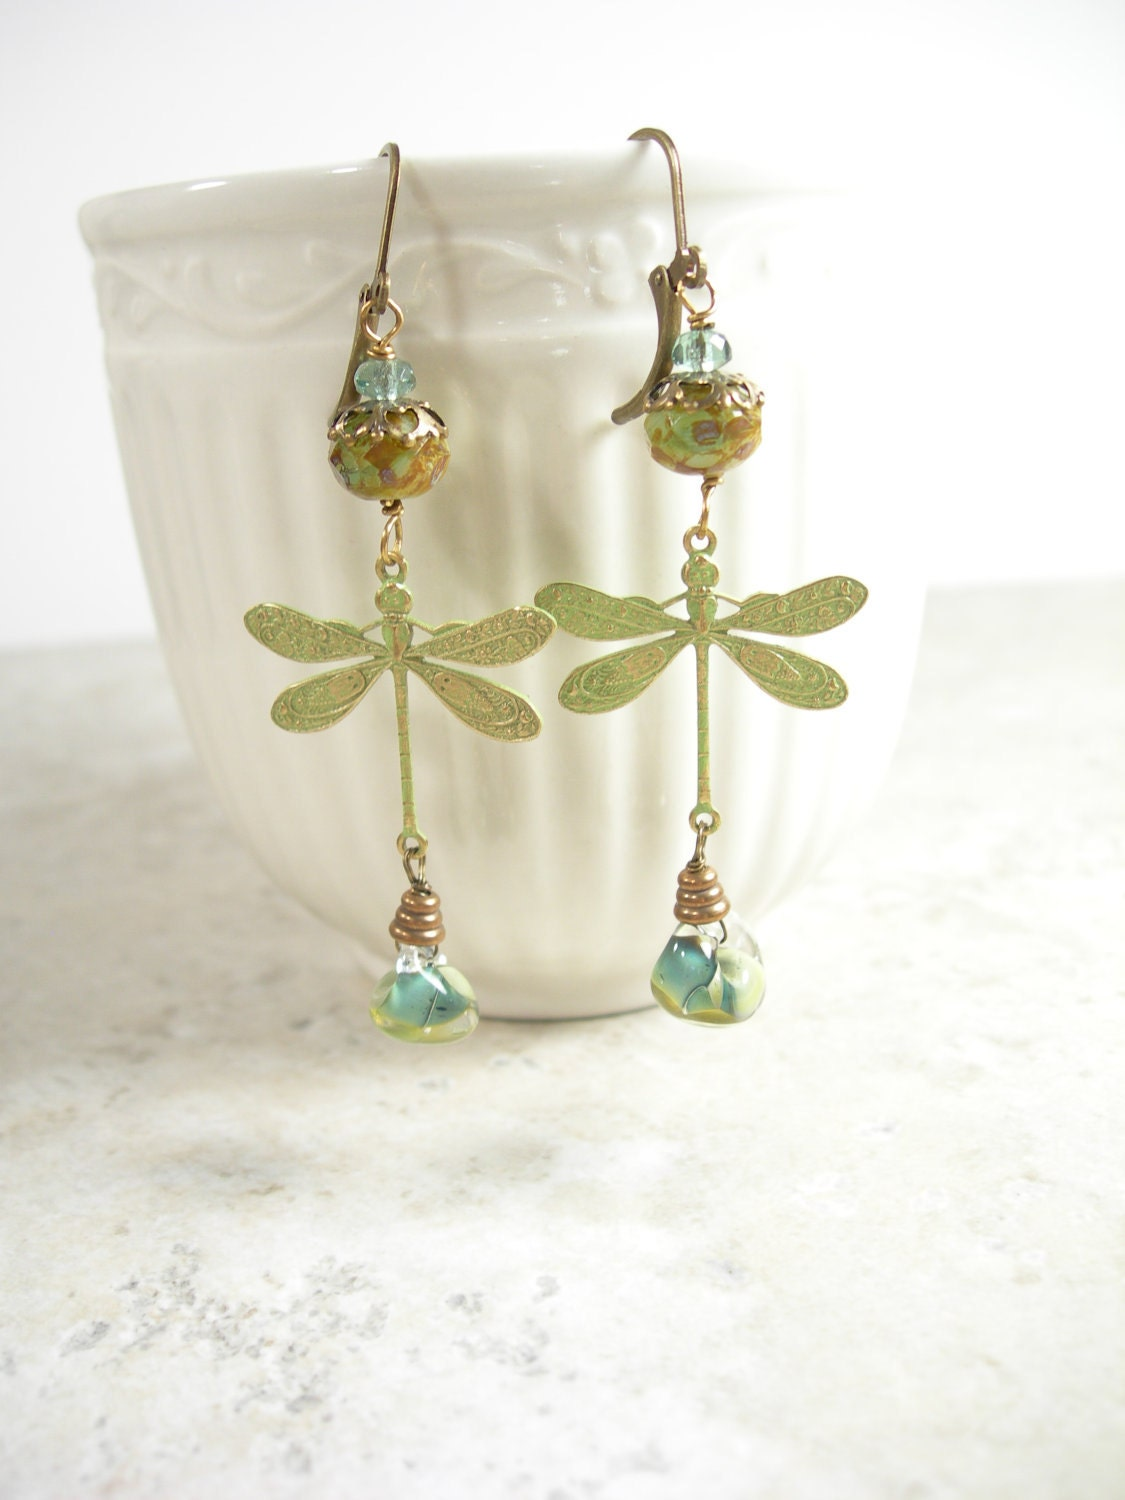 Dragonfly Dream Earrings, patinaed sage gold dragonflies, mossy sage lampwork, and antiqued brass